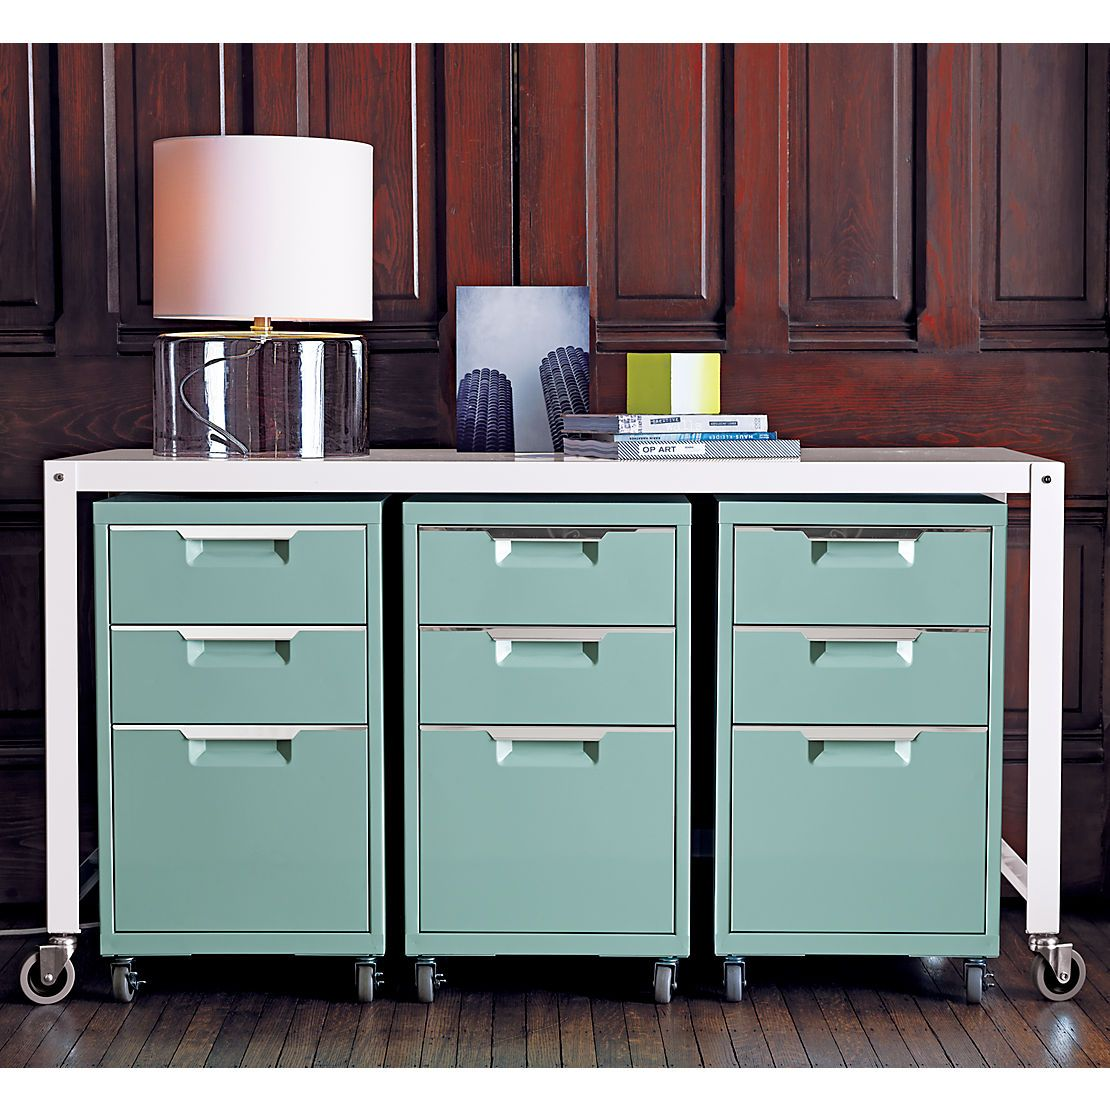 Beau Carbon File Cabinet In Office Furniture | CB2